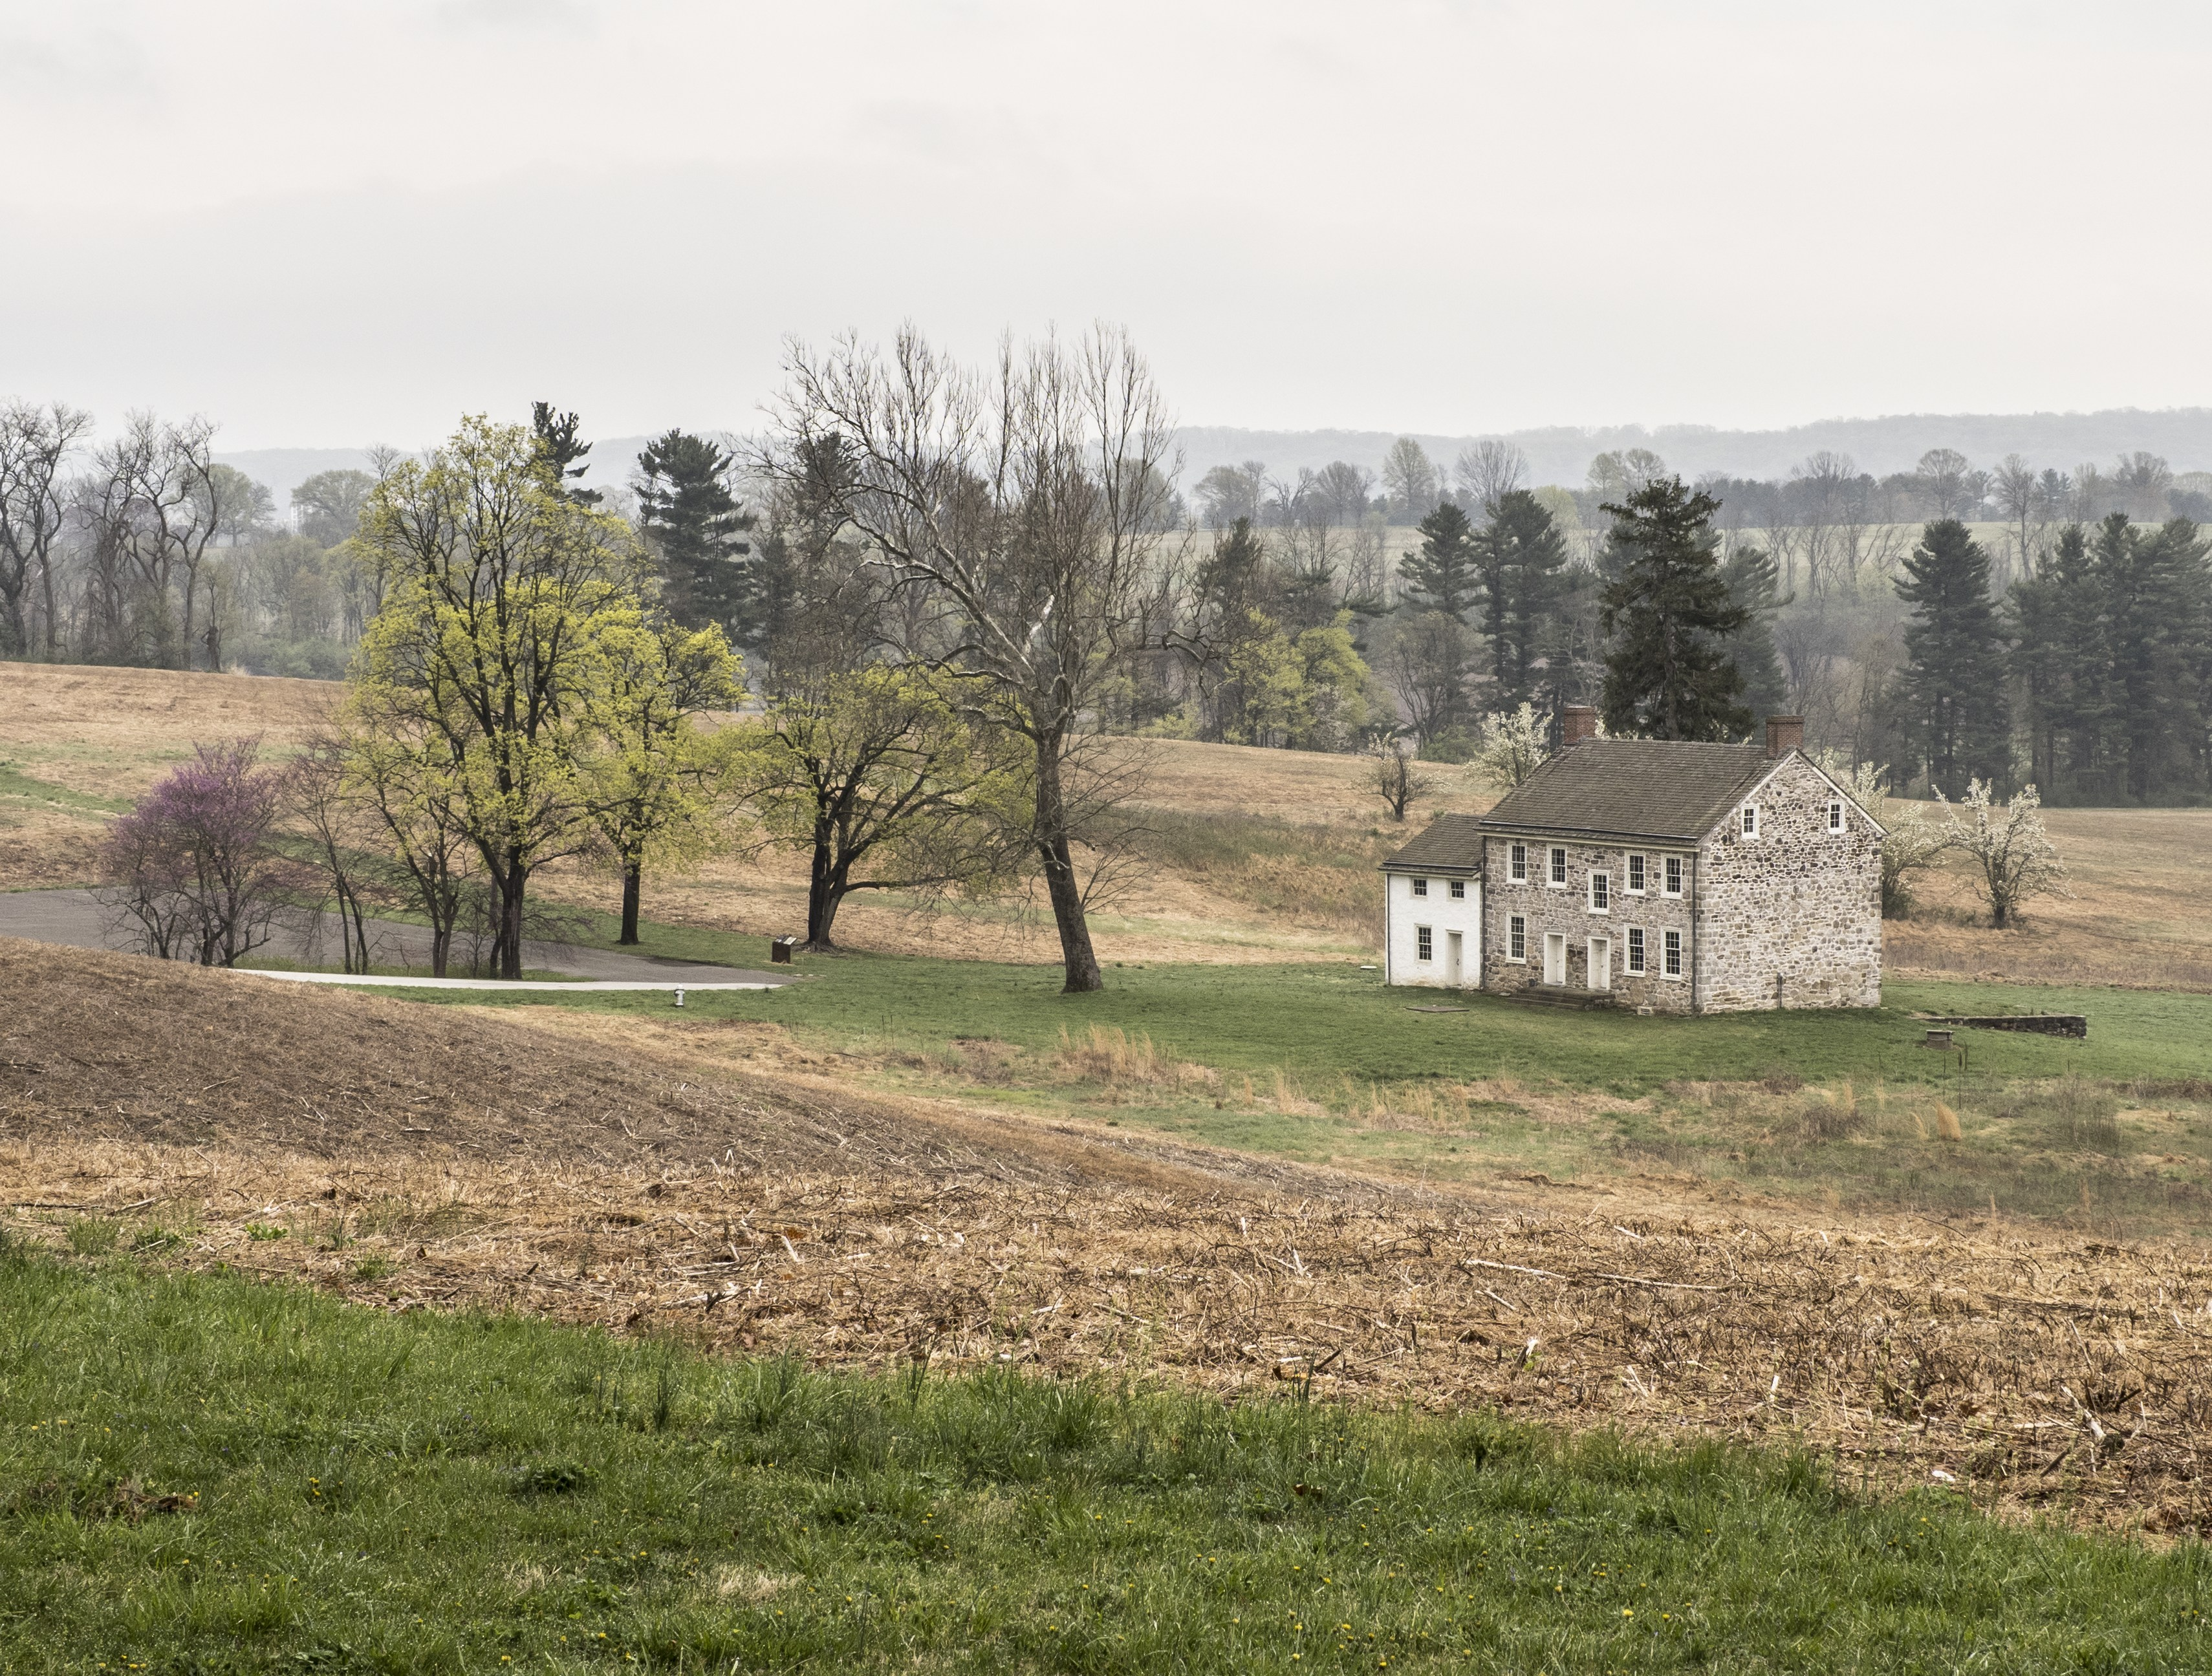 The landscape of Valley Forge.